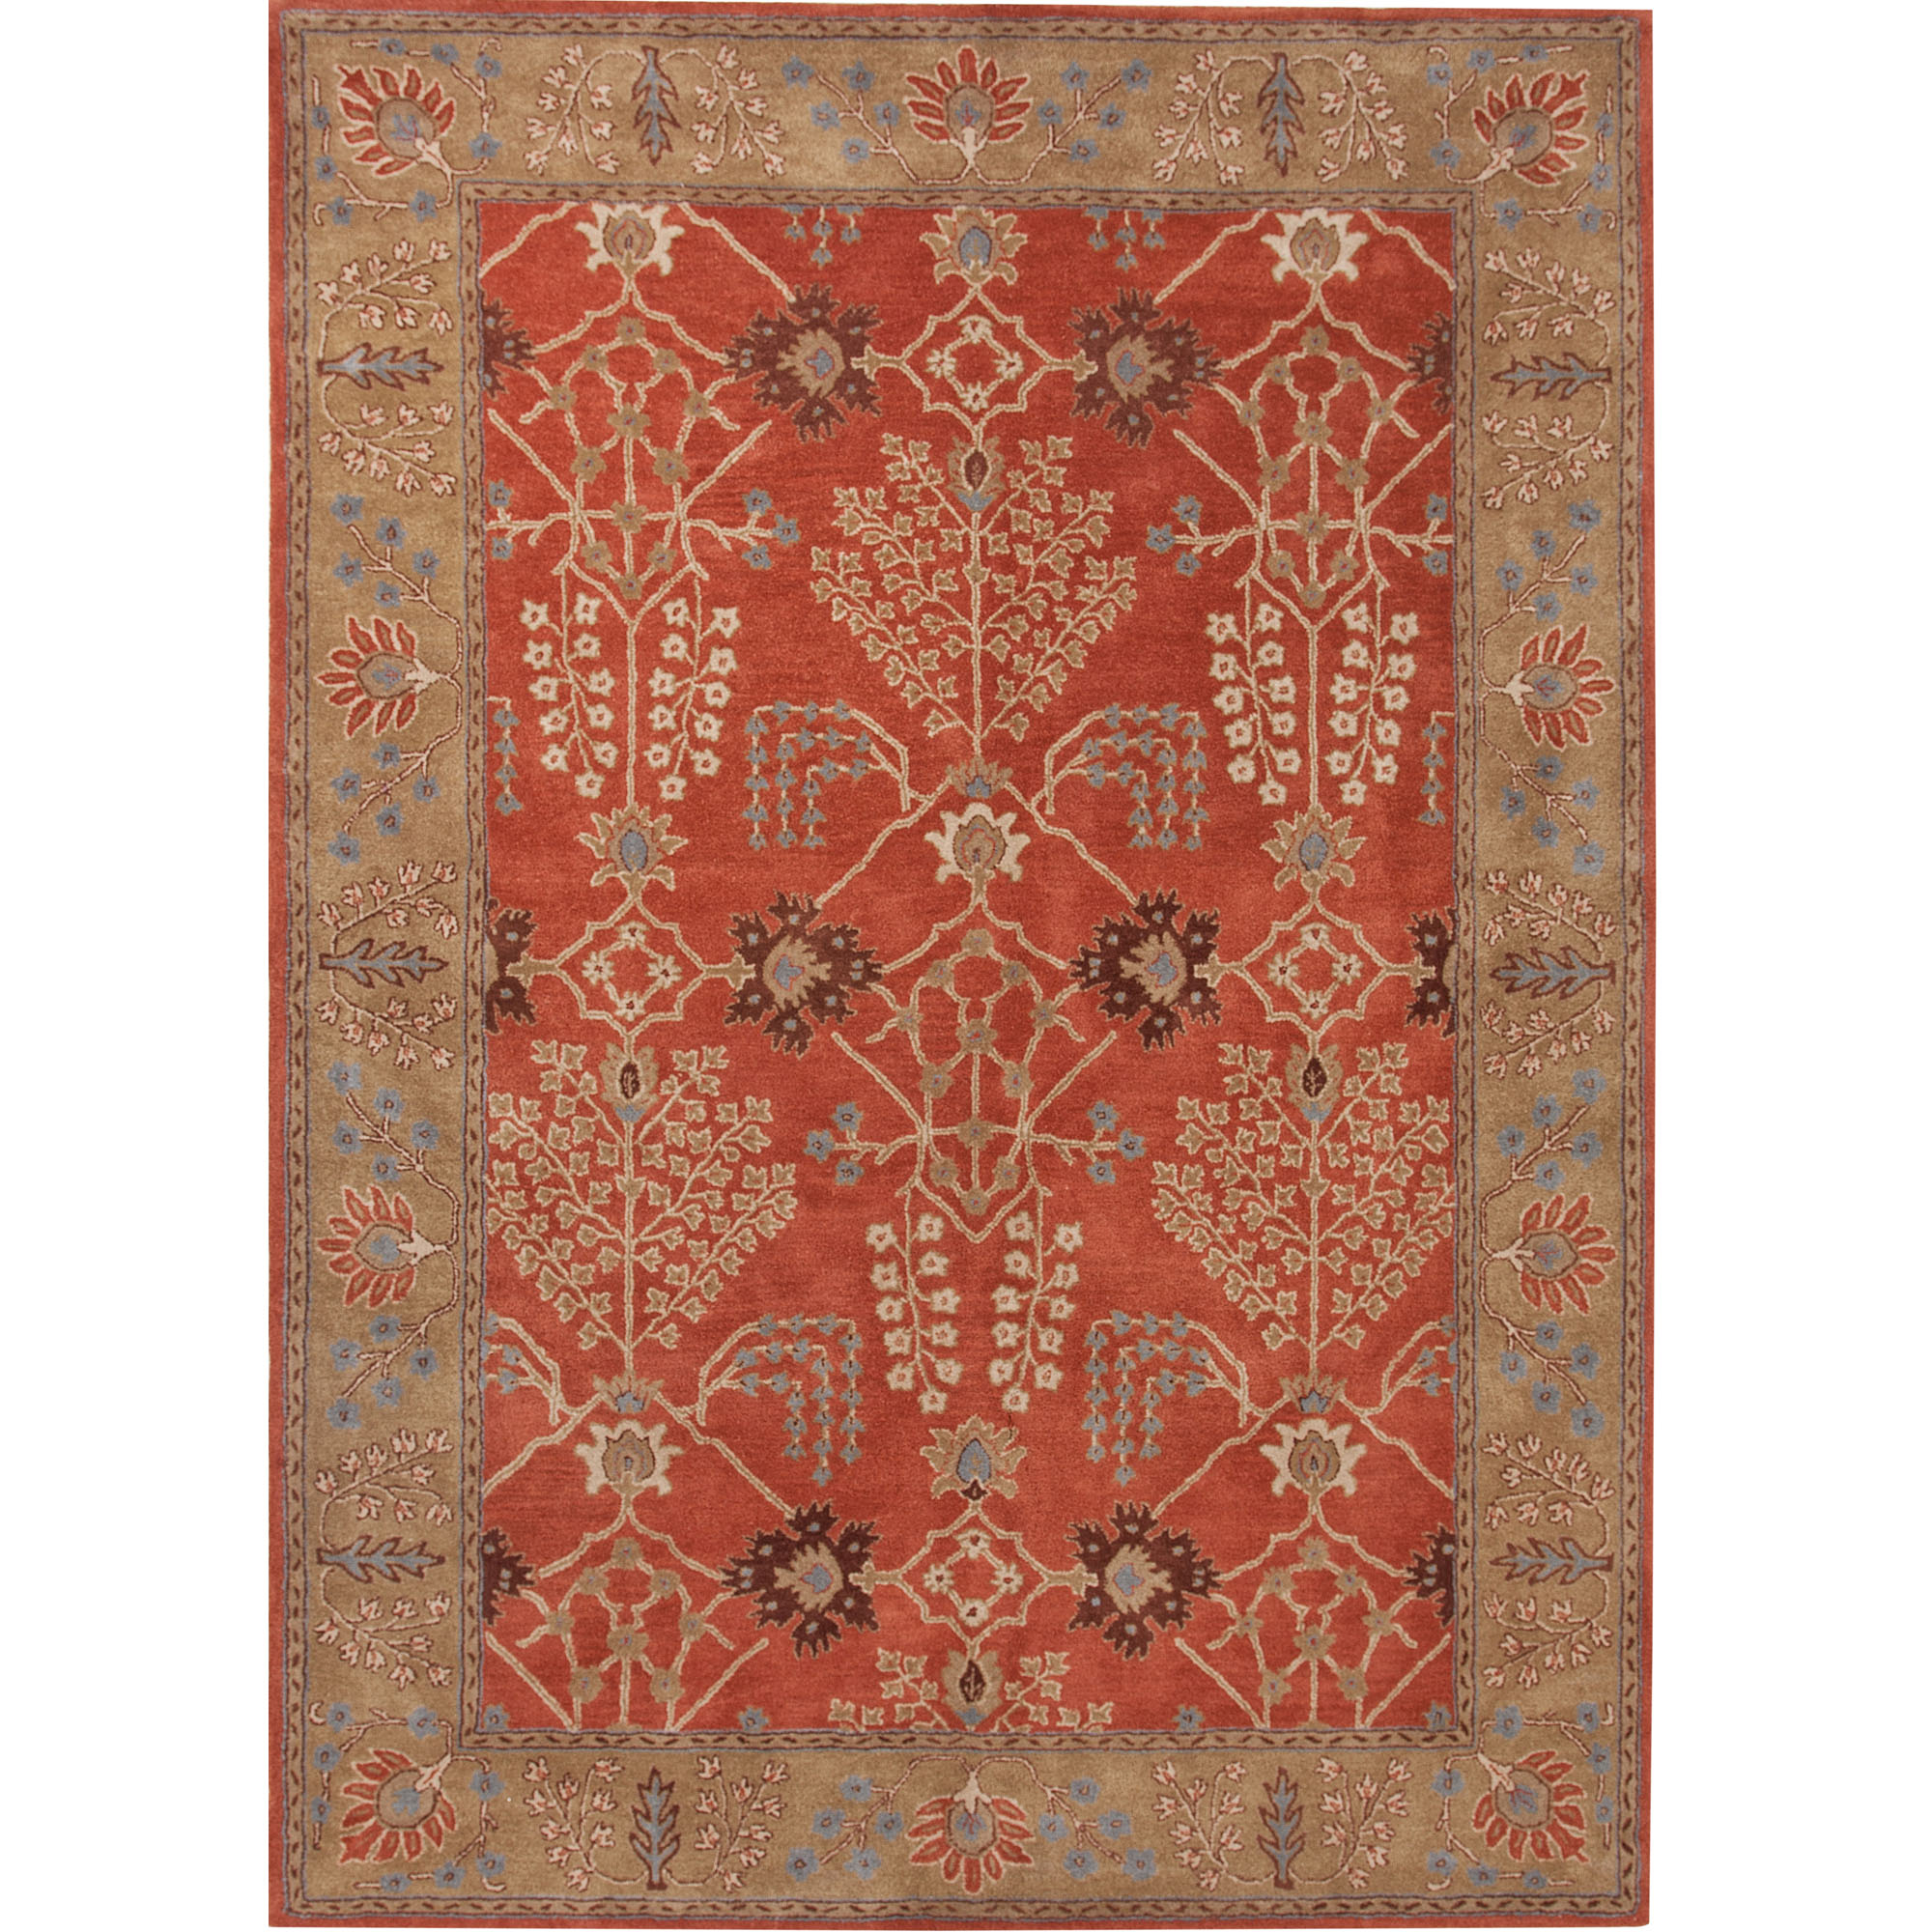 Poeme 2 x 3 Rug by JAIPUR Living at Sprintz Furniture